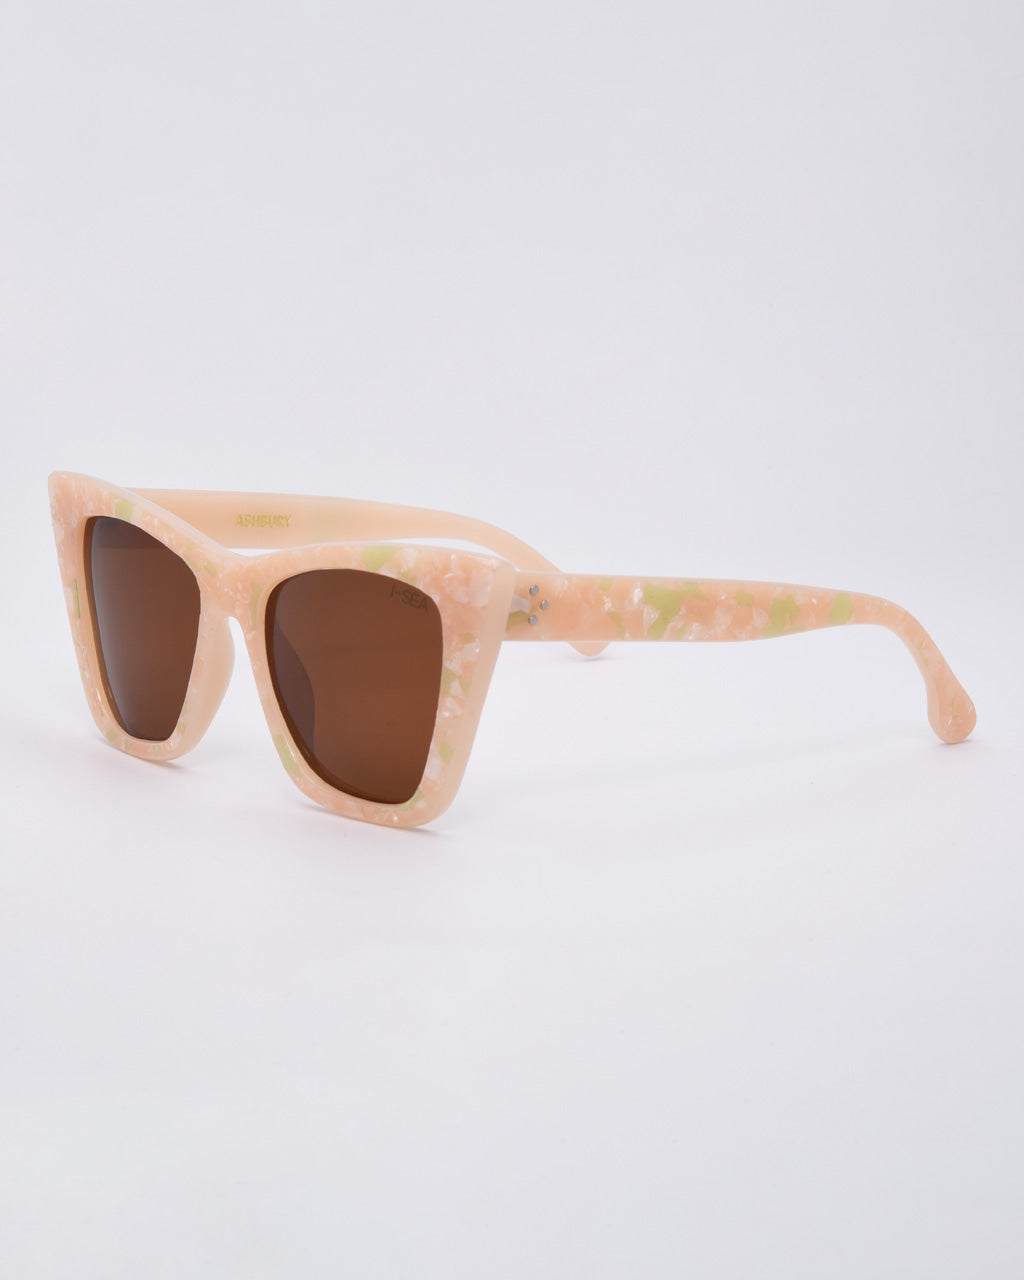 pink pearl sunglasses with light brown lenses side view